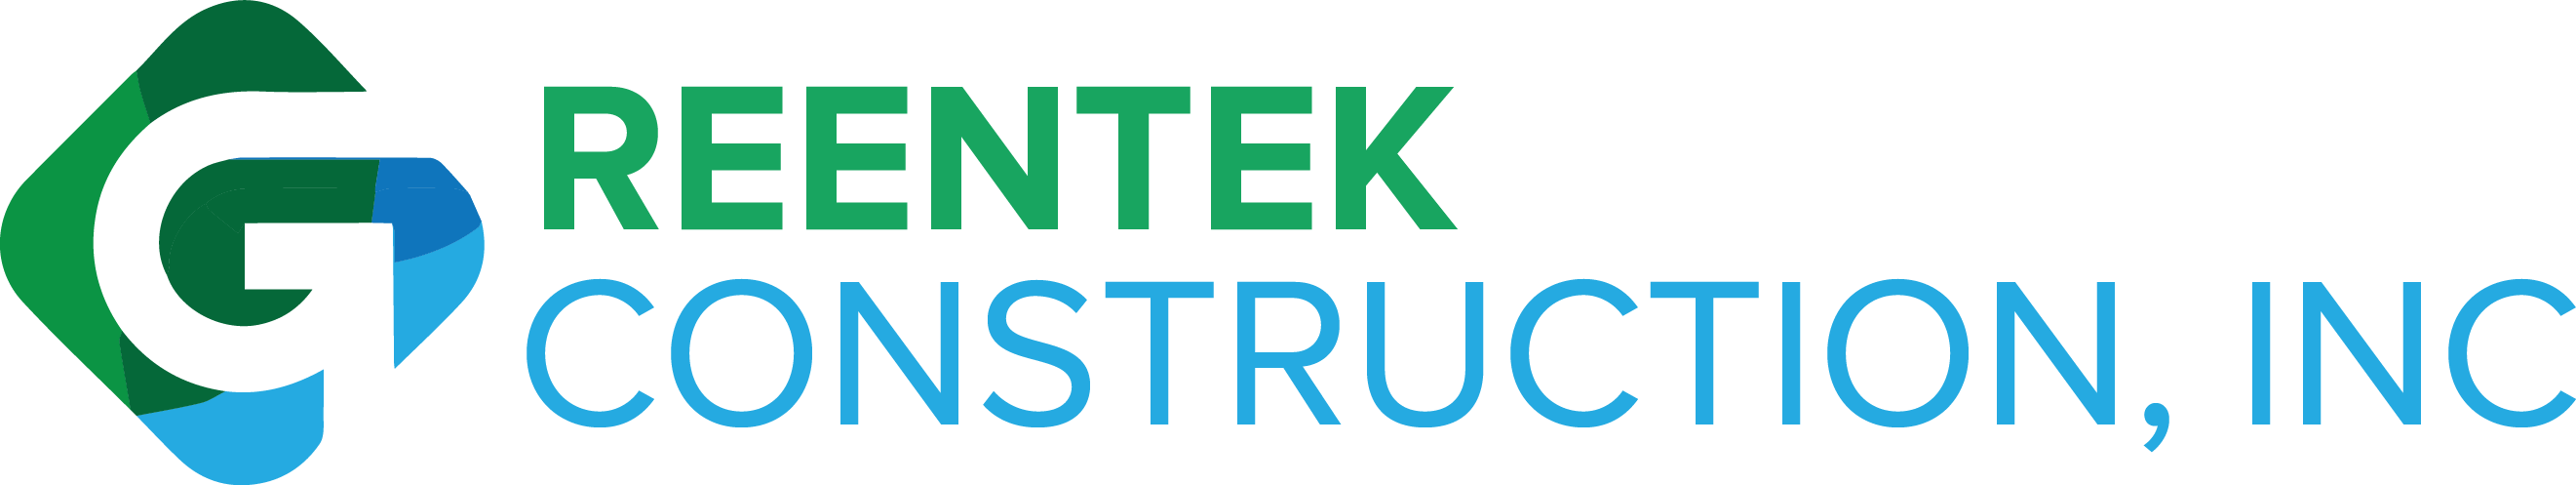 Team Member - 1 | GreenTek Construction